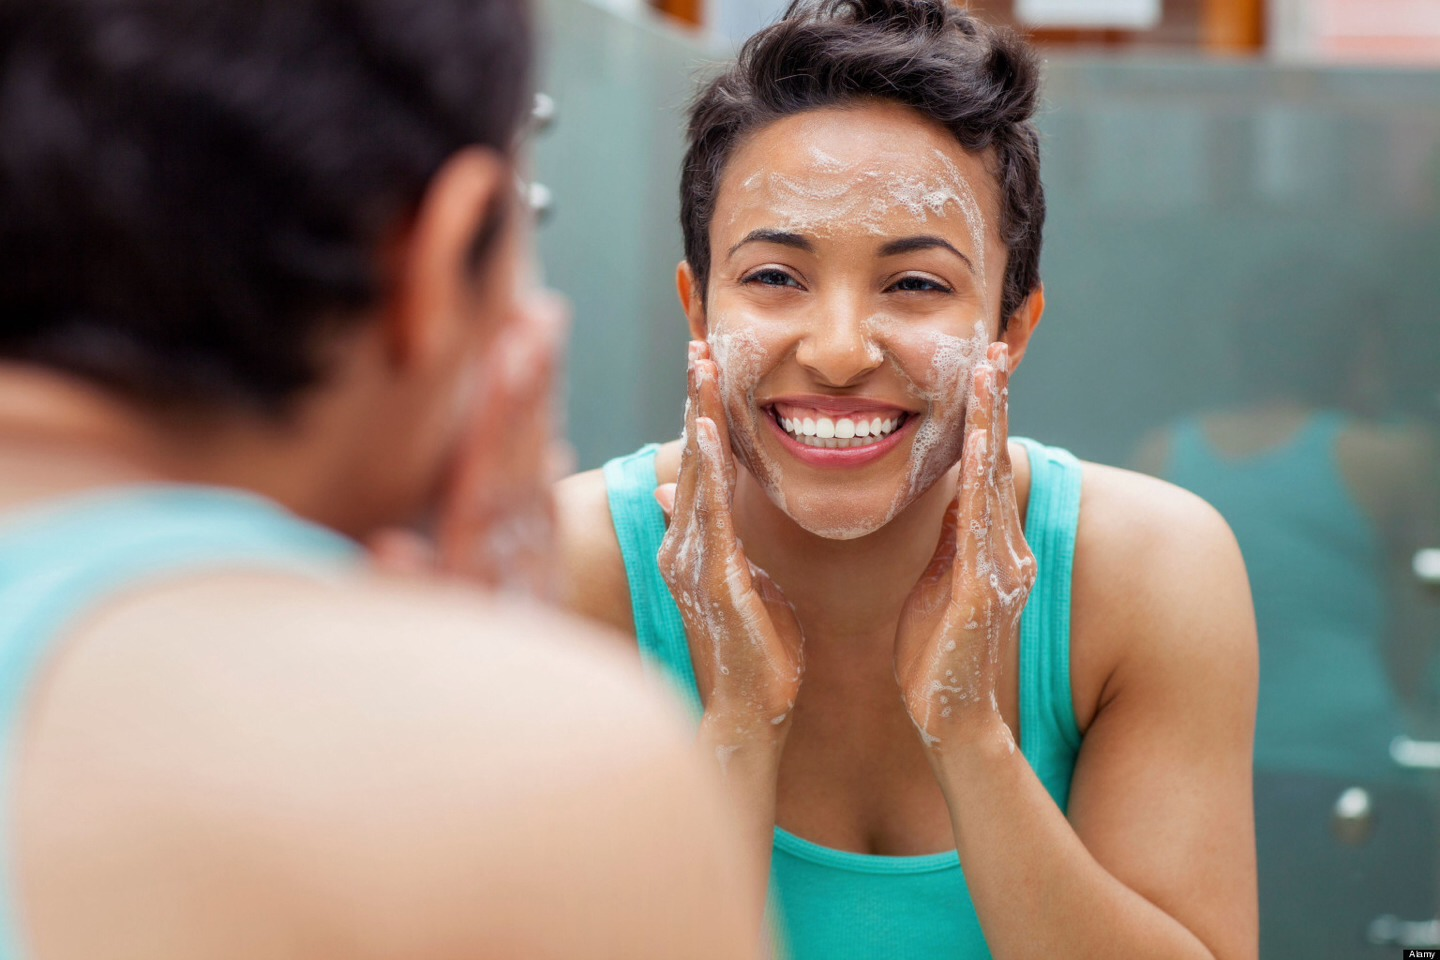 Oily doesn't mean dirty. If you have oily skin don't over scrub it to get it clean, it could make your problem worse.